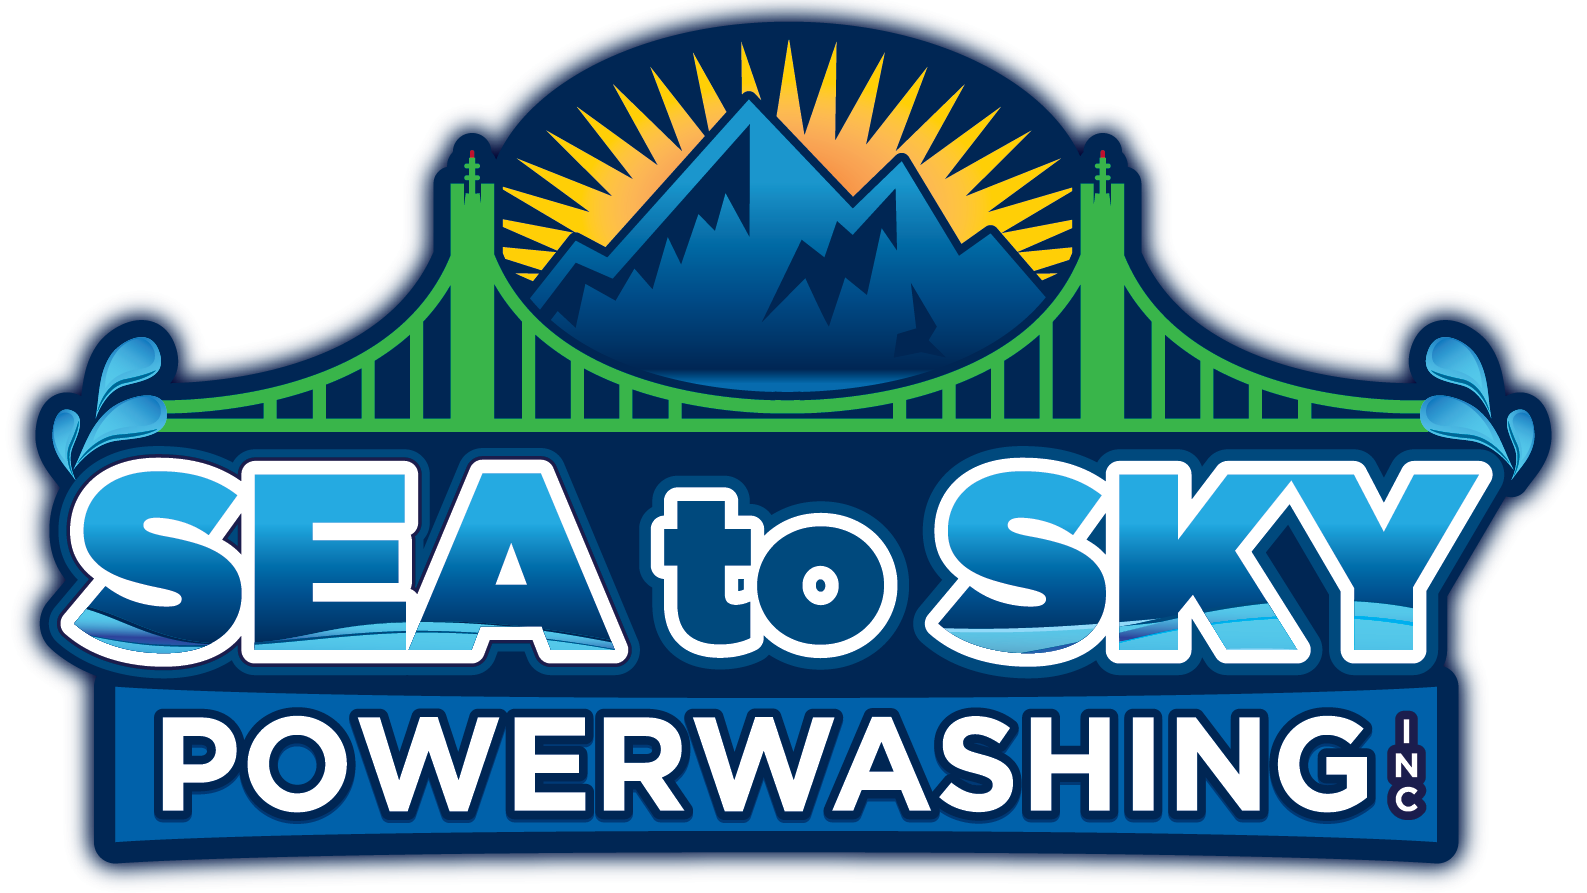 Sea to Sky Power Washing logo